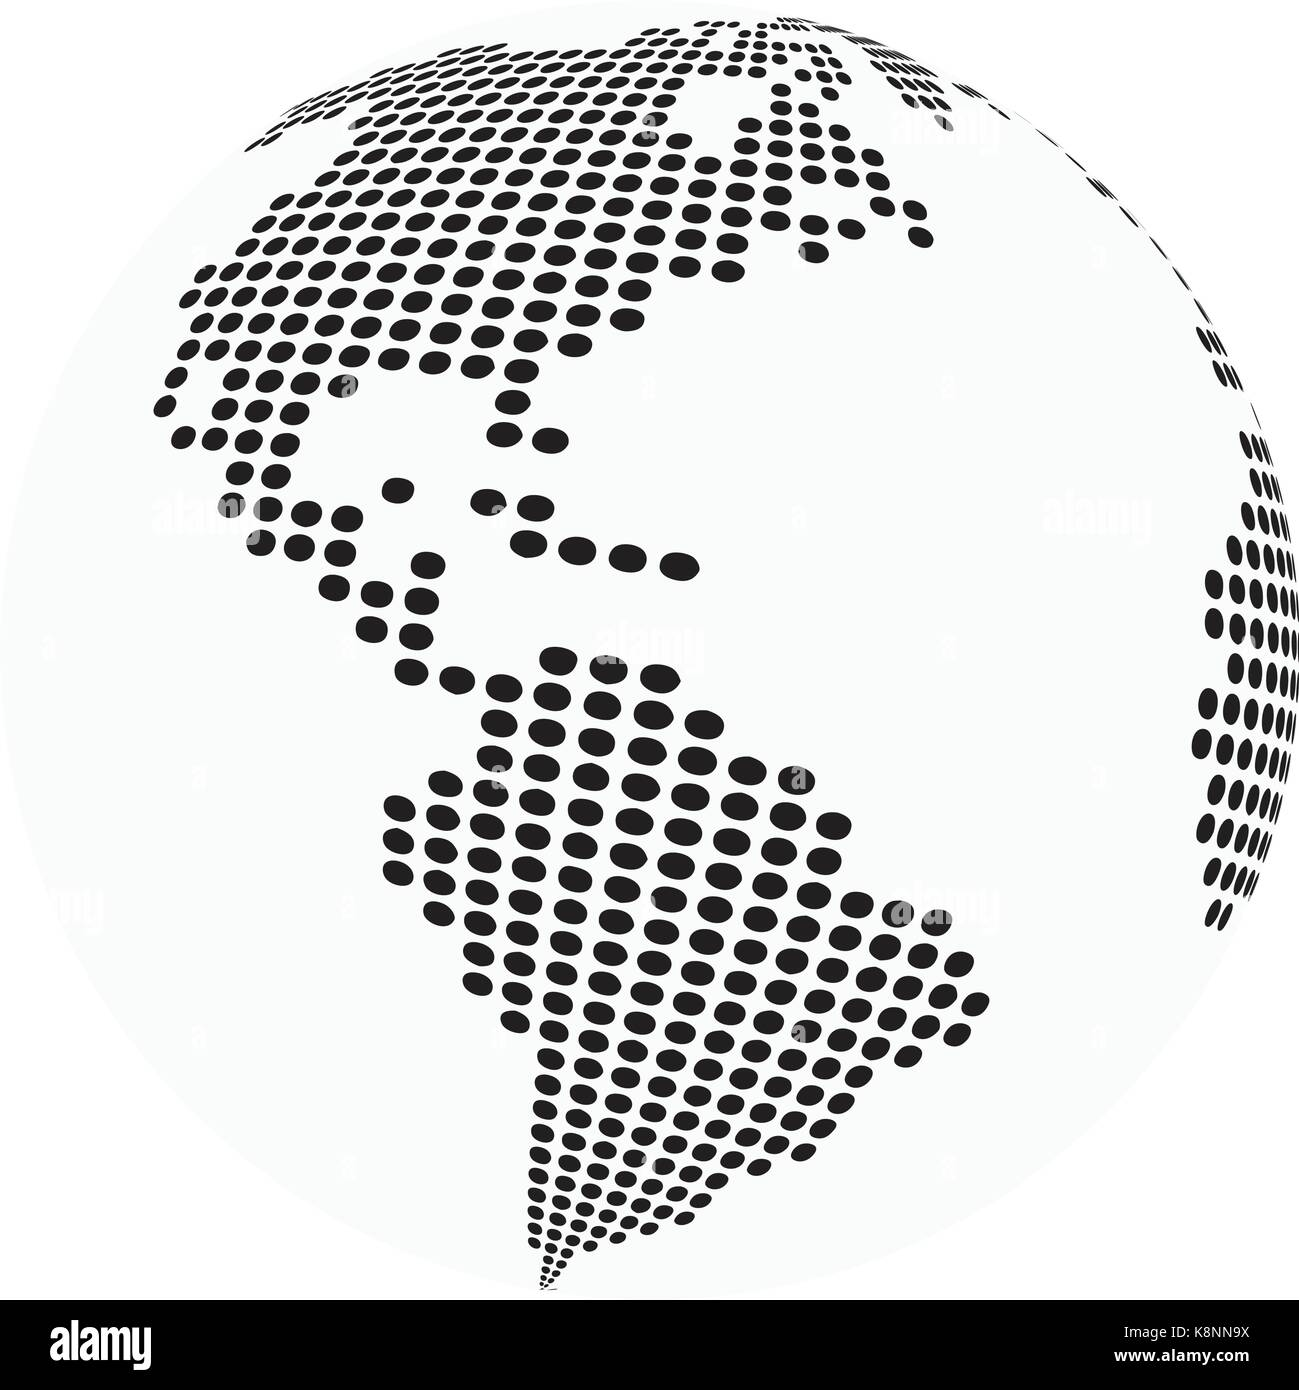 Globe earth world map abstract dotted vector background black globe earth world map abstract dotted vector background black and white silhouette illustration gumiabroncs Image collections